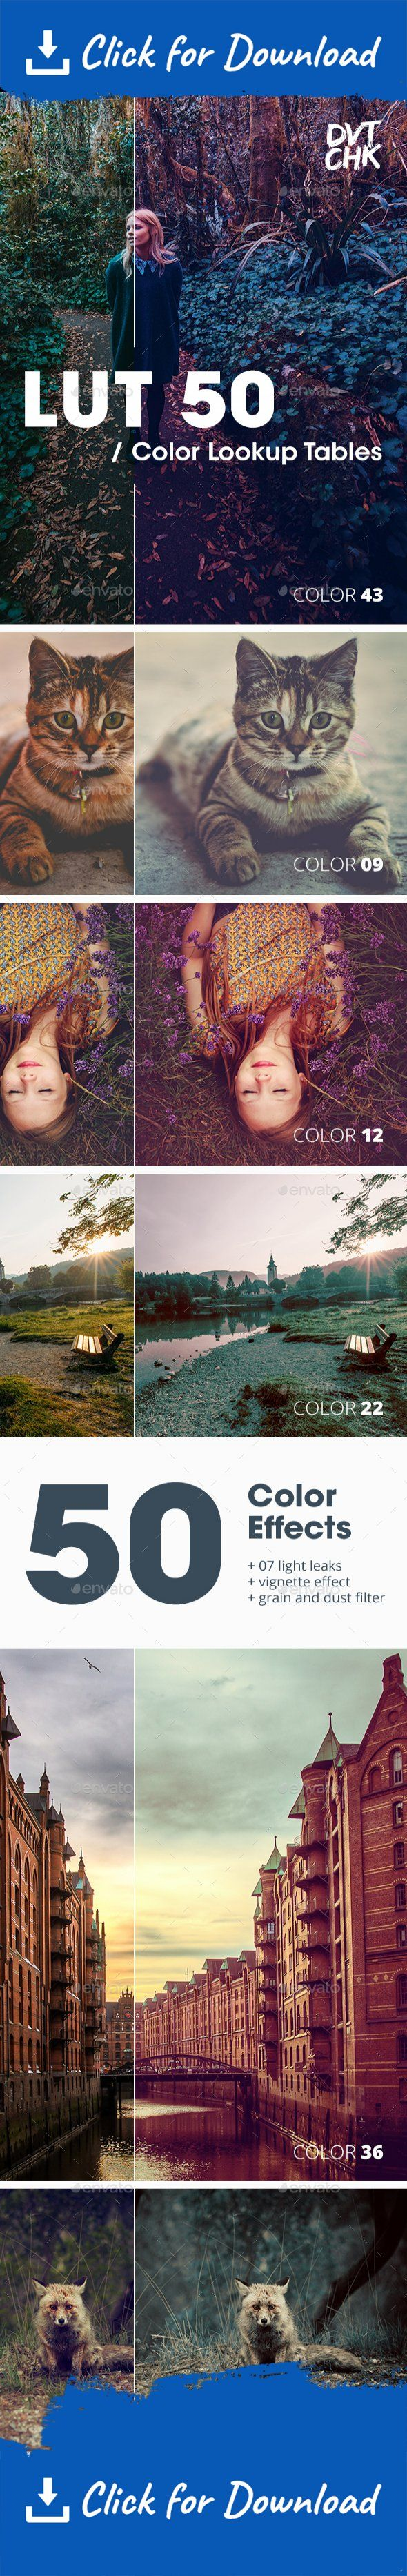 80's, cinematic, color lookup table, cross process, design, dirty, effect, facebook, film, filter, flickr, grunge, instagram, ipster, lighting, lomo, matte, nashville, old, photo, photographer, premium, retro, sepia, texture, unsplash, vintage, wash, x-pro Video Tutorial https://youtu.be/Iv6RJk4ArHQ  ** Small Update! I've included .3dl and .cube file formats. I can also provide .csp files upon request. **   Description LUT 50 – Photoshop Color Filter FX. Choose between 50 different col...